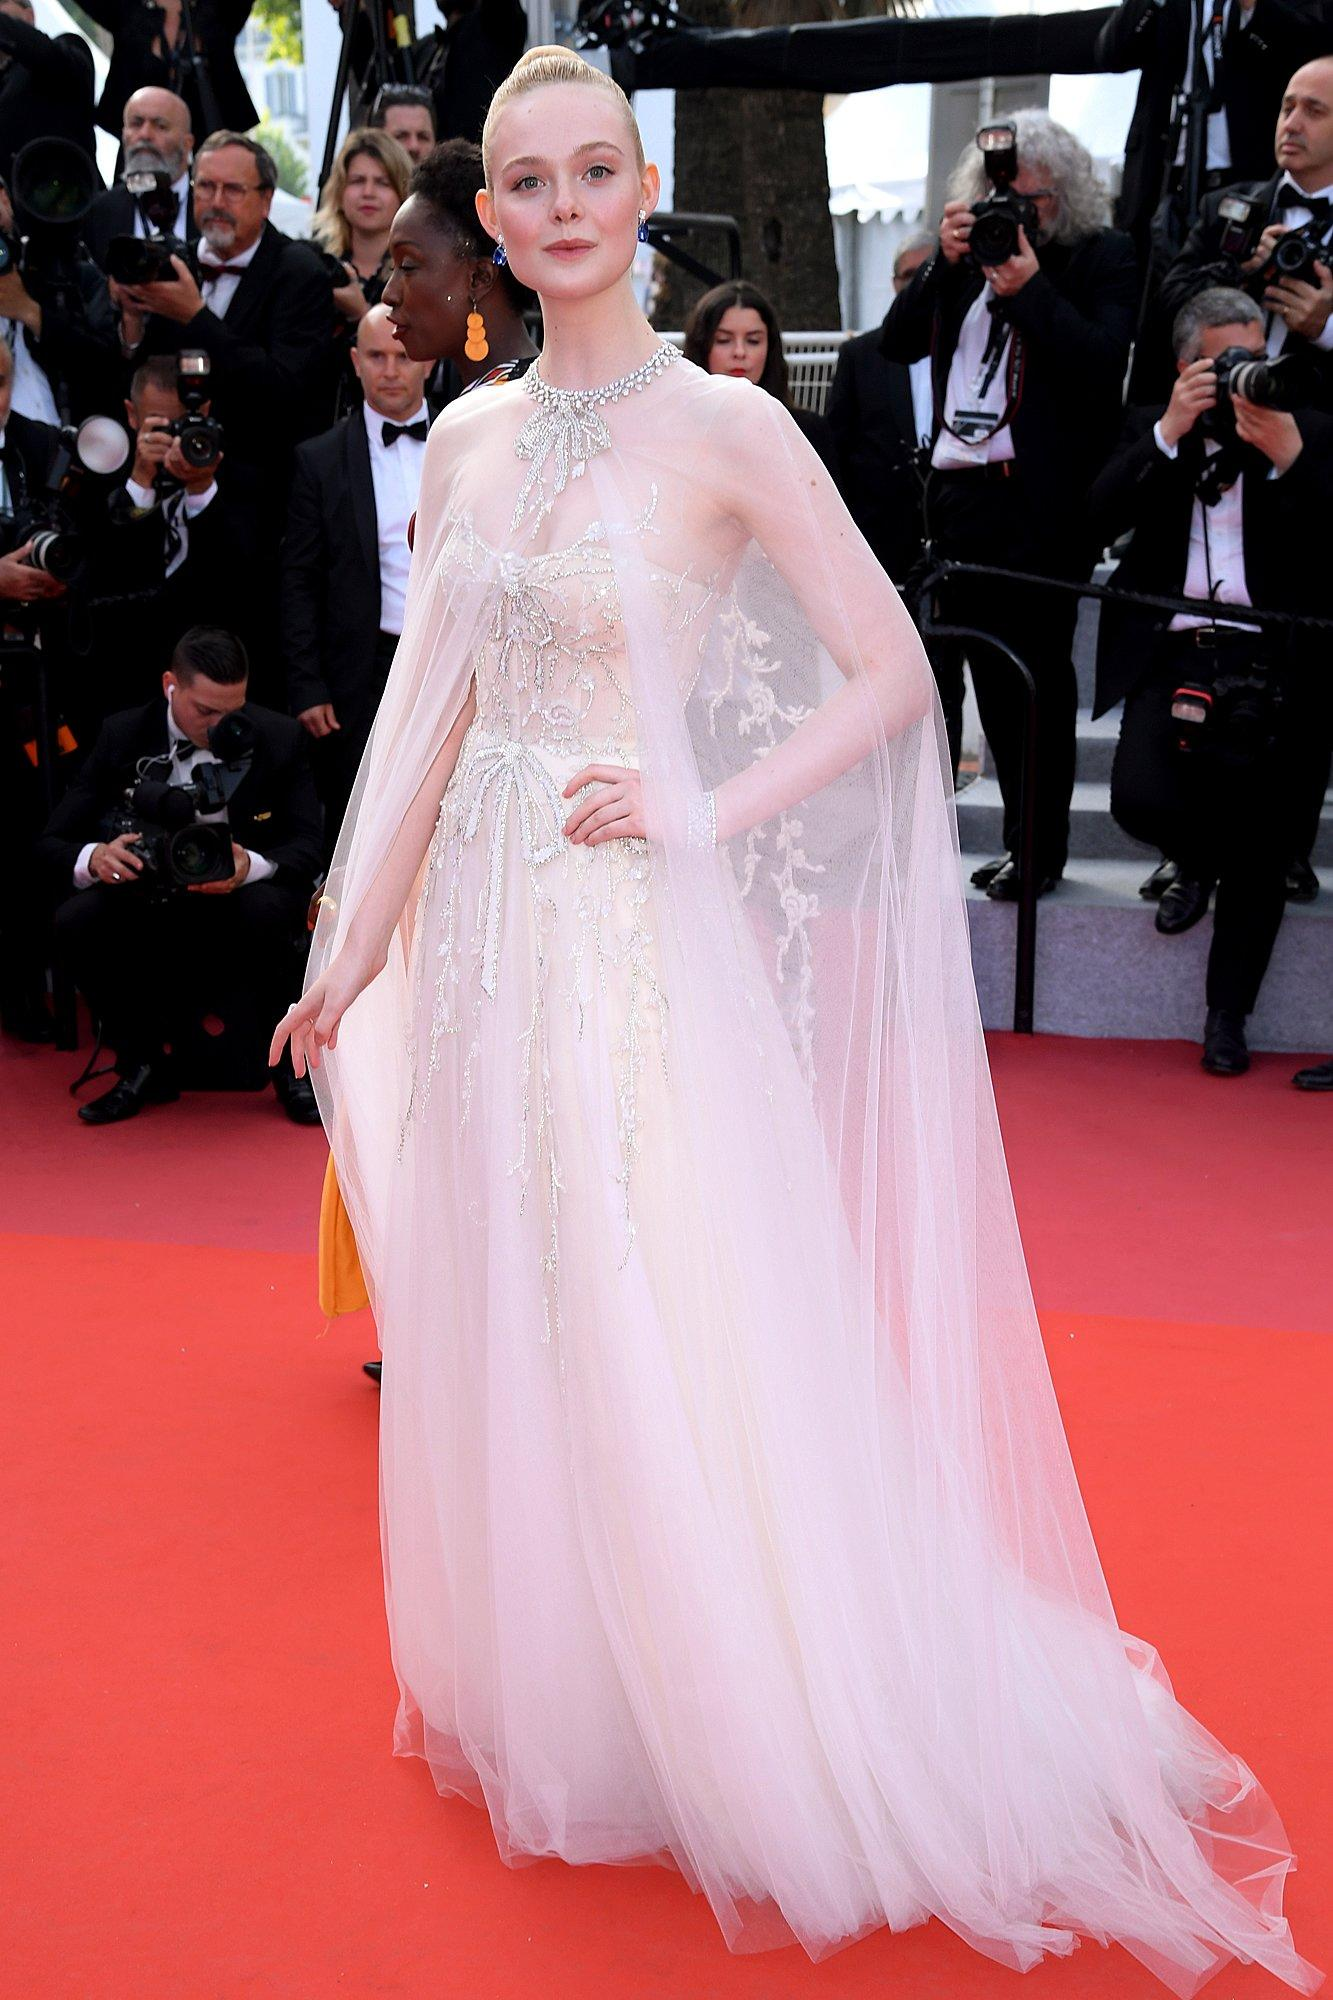 See the Best Dressed Celebrities at the Cannes Film Festival | Nice dresses, Cannes film